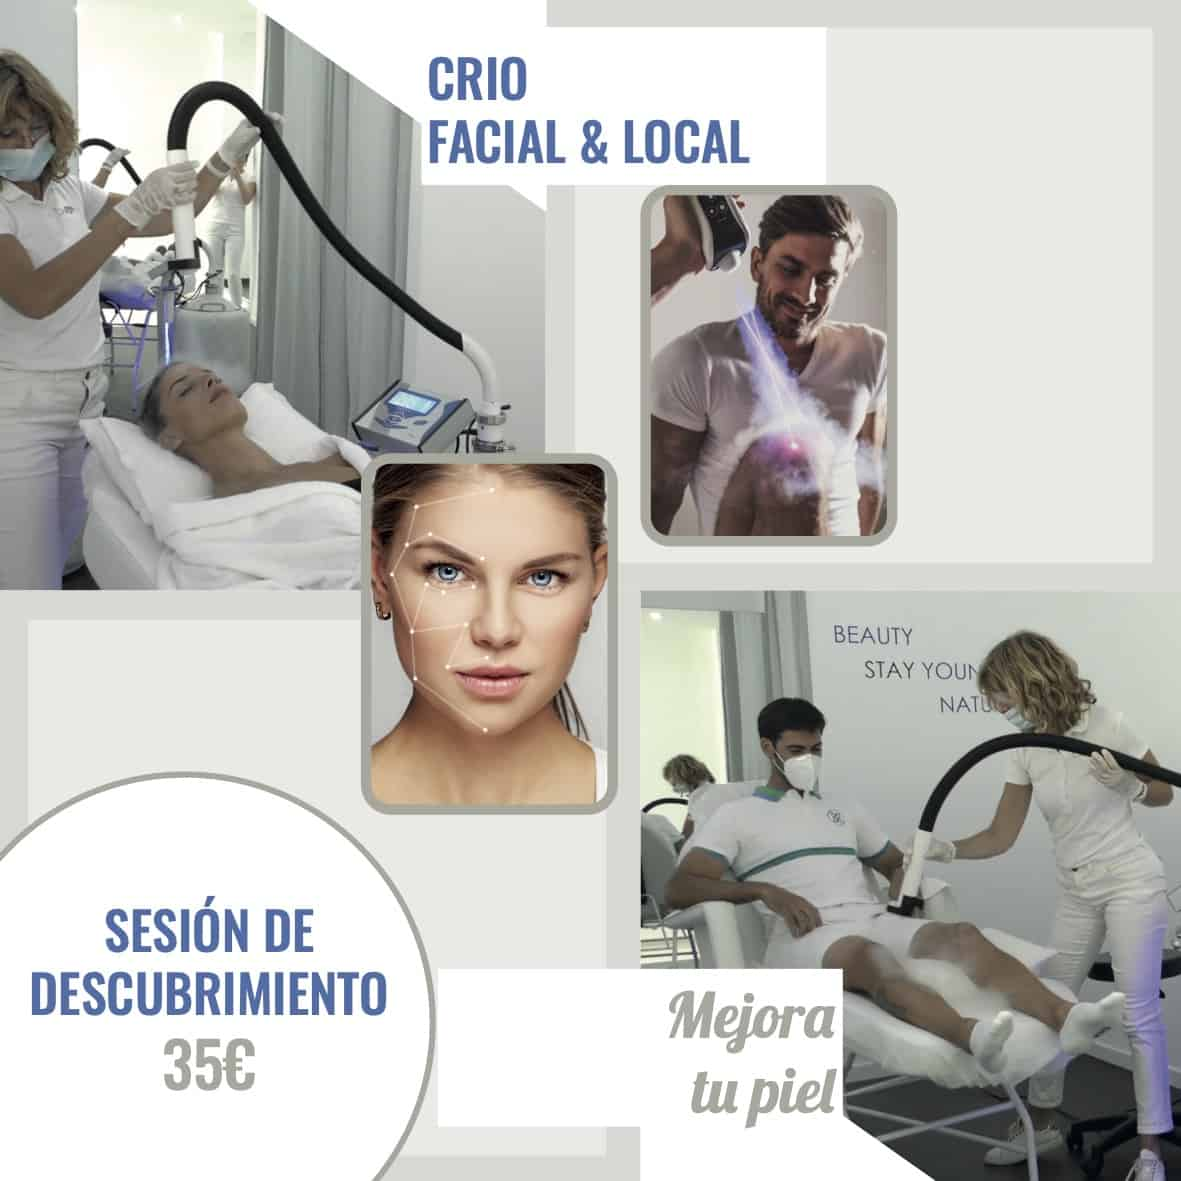 Crioterapia-Facial-Local